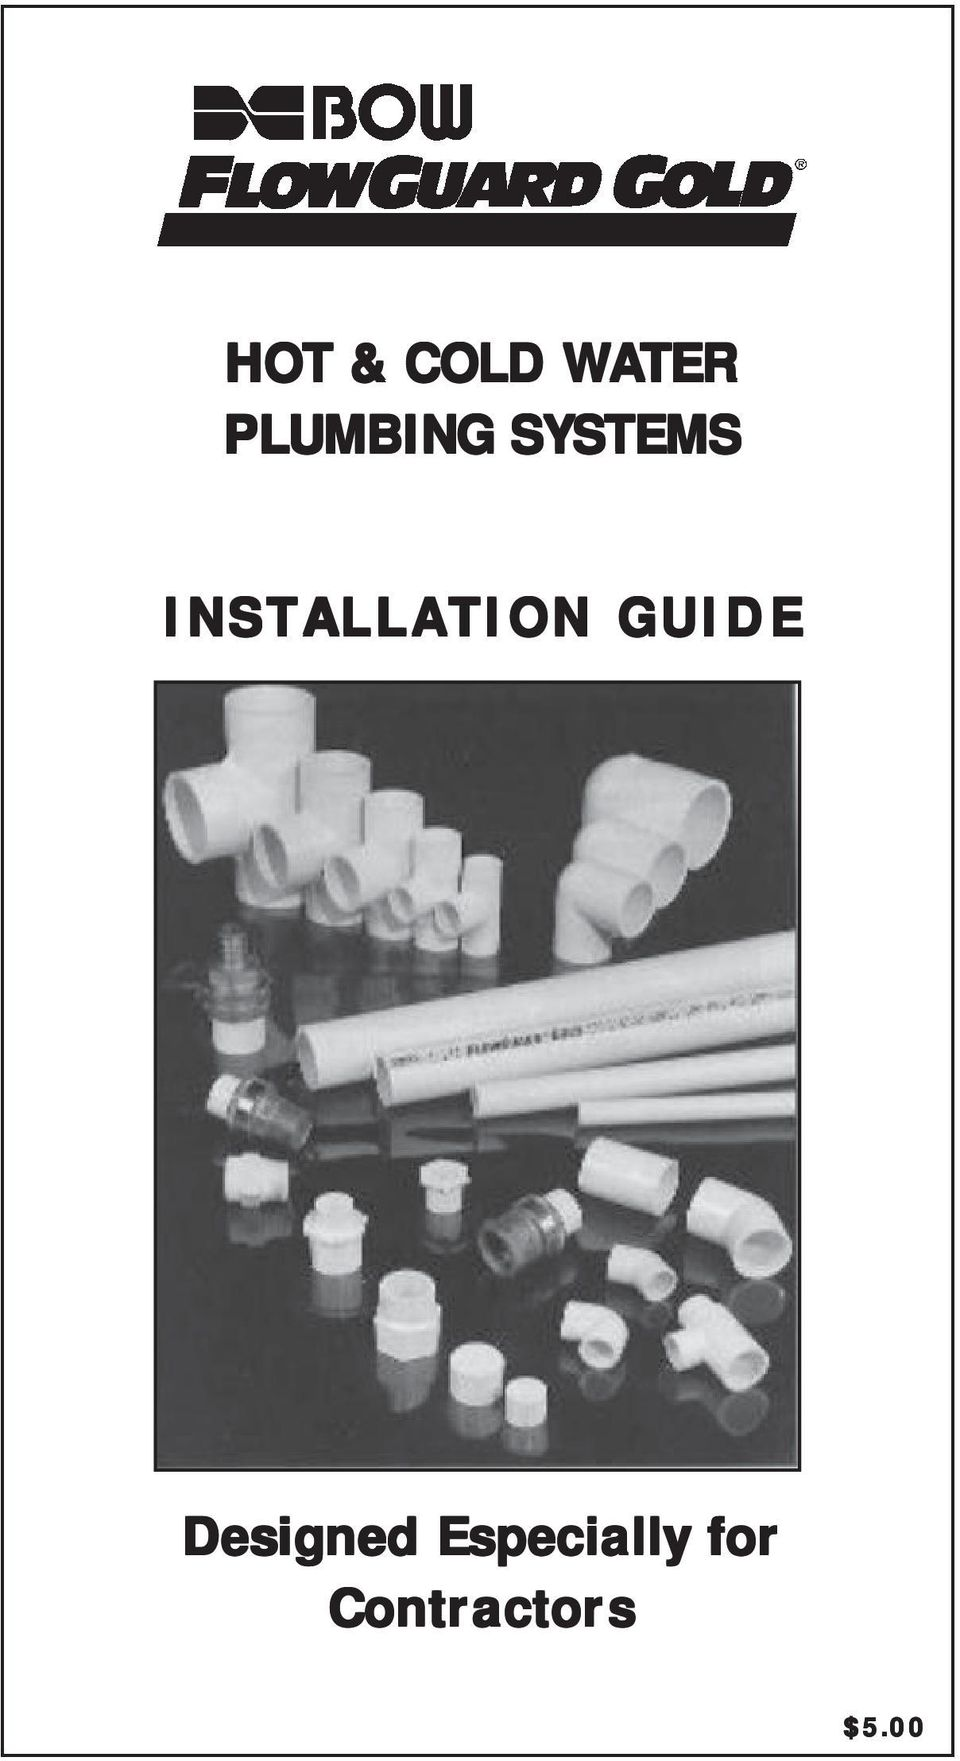 HOT & COLD WATER PLUMBING SYSTEMS INSTALLATION GUIDE - PDF